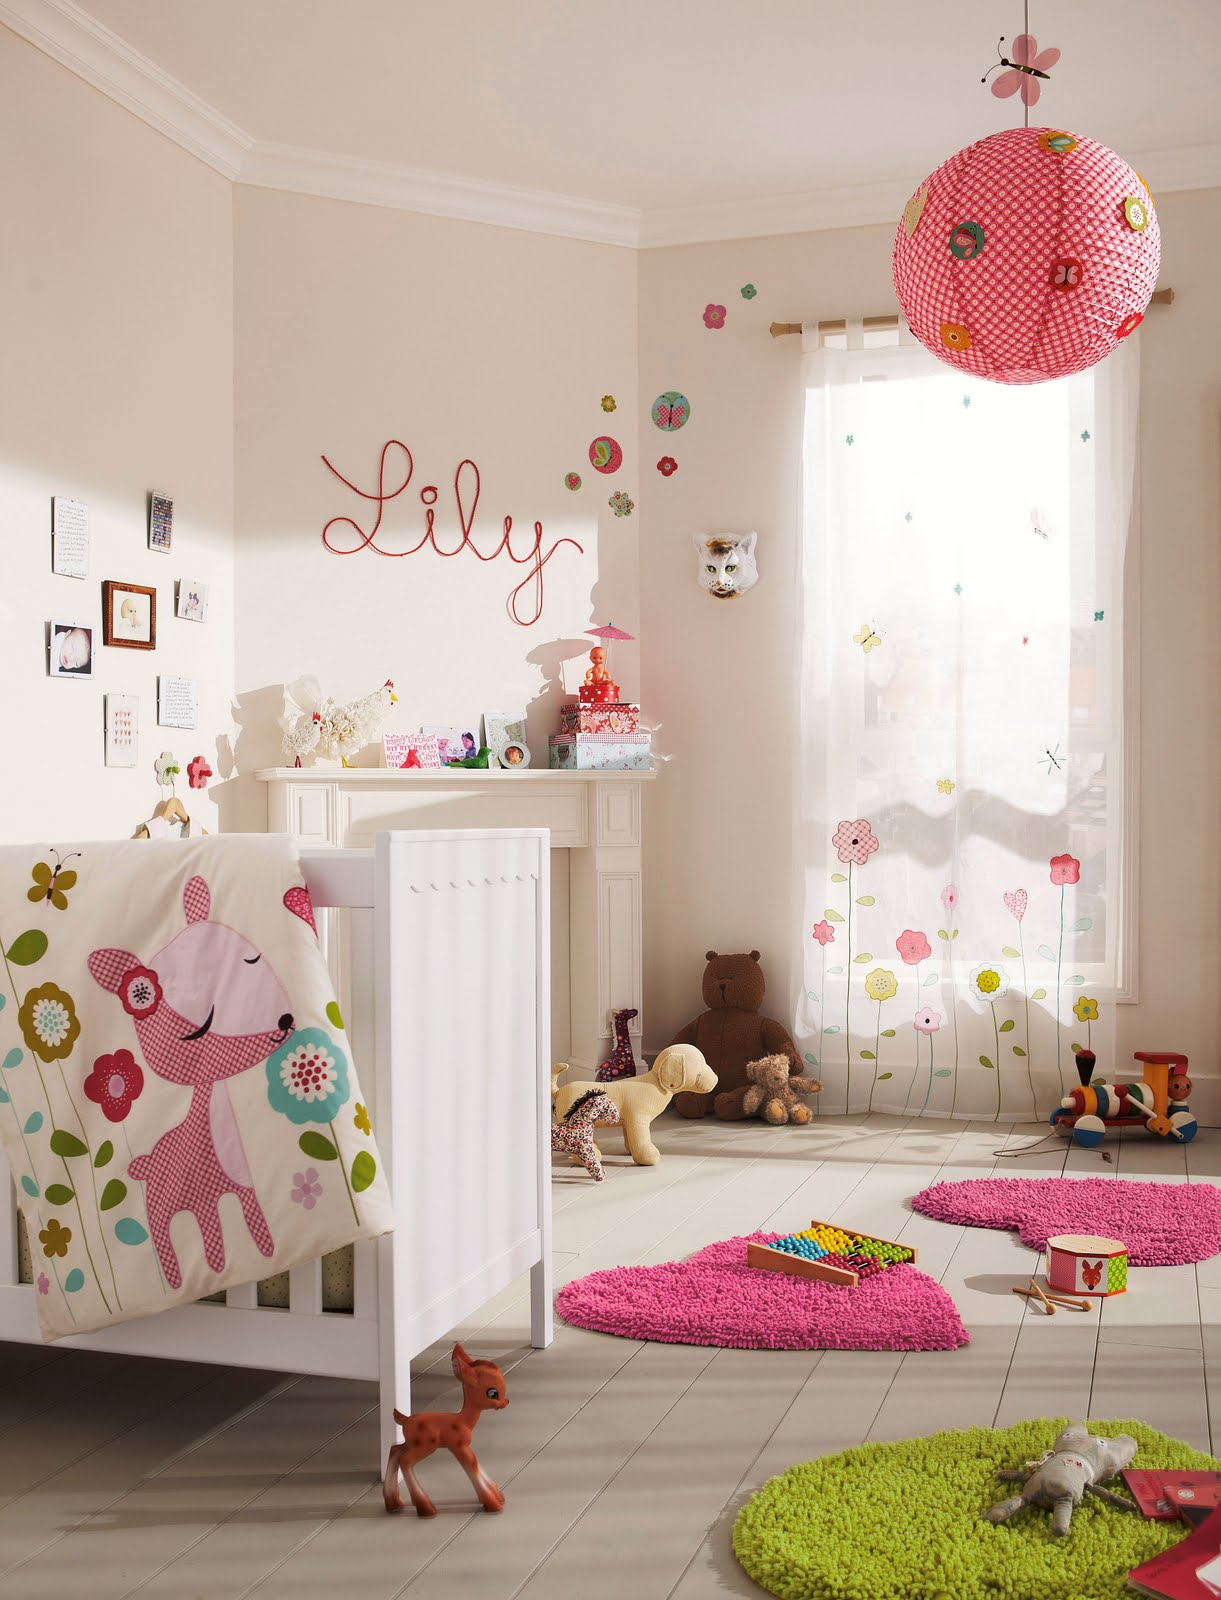 Pompons ch rie sheriff blog lifestyle mode famille for Idee chambre fille